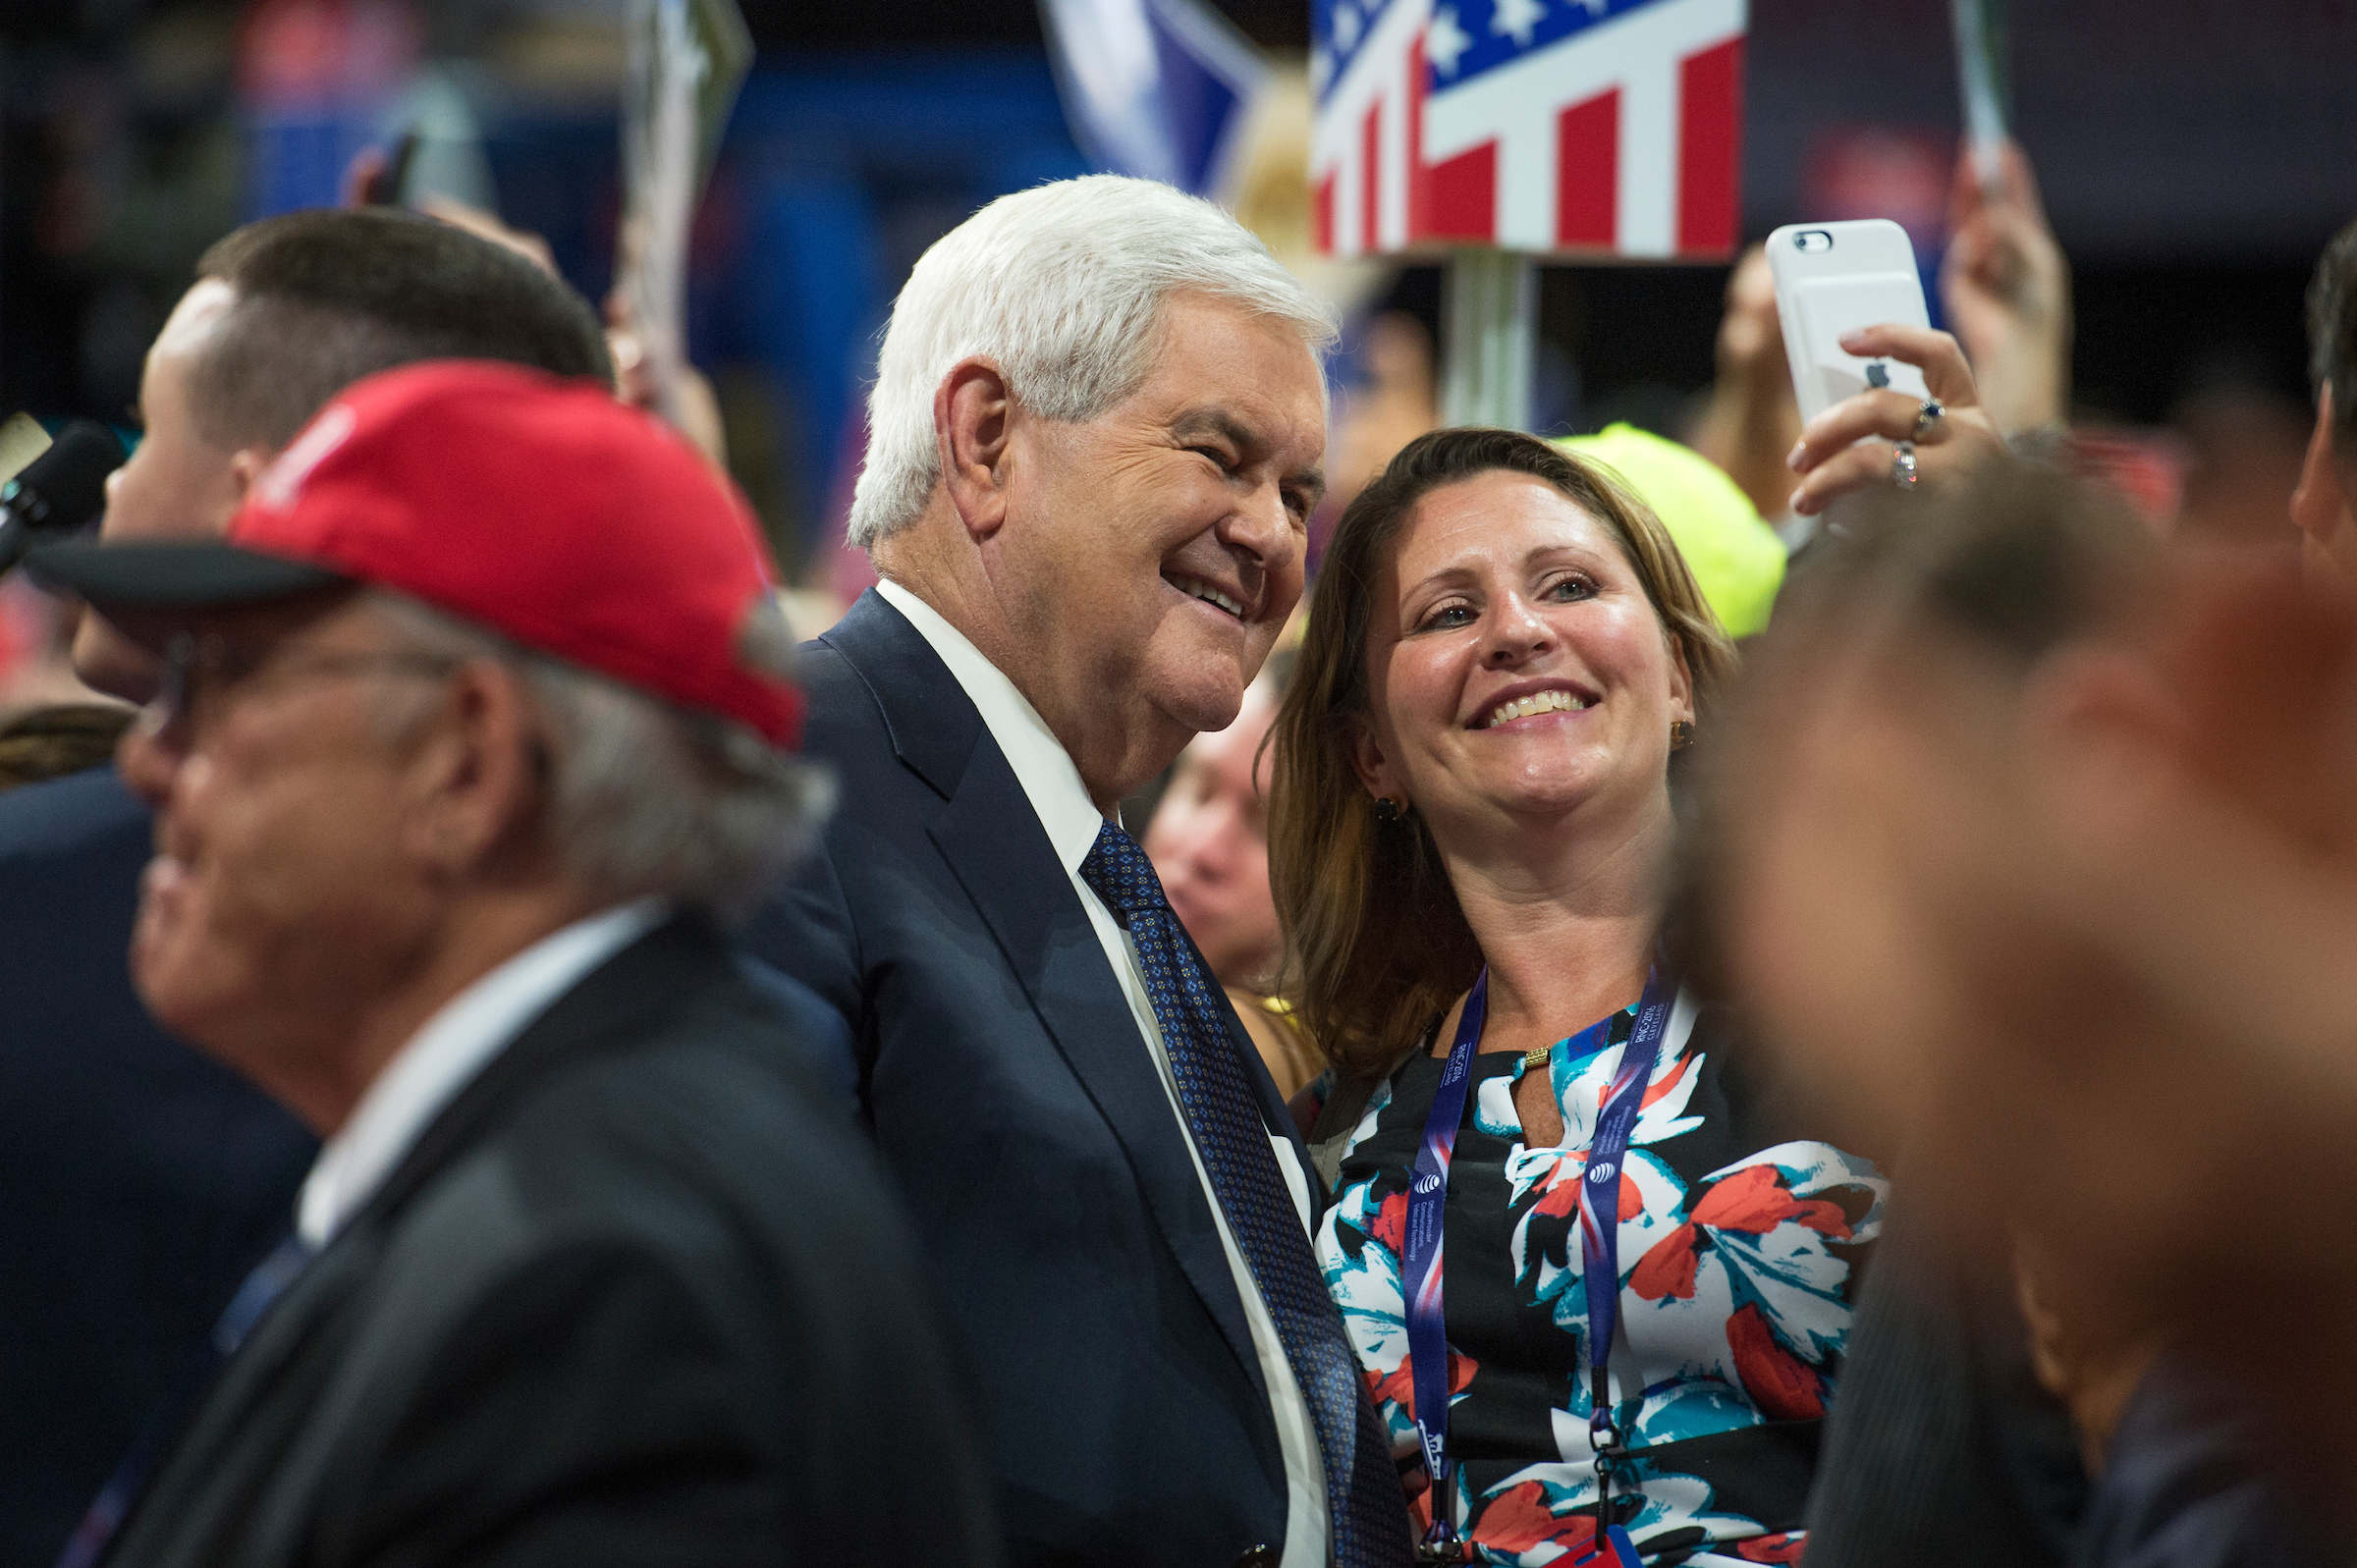 Former House Speaker Newt Gingrich takes pictures with a guest at the Republican National Convention in Cleveland last week. (Tom Williams/CQ Roll Call)